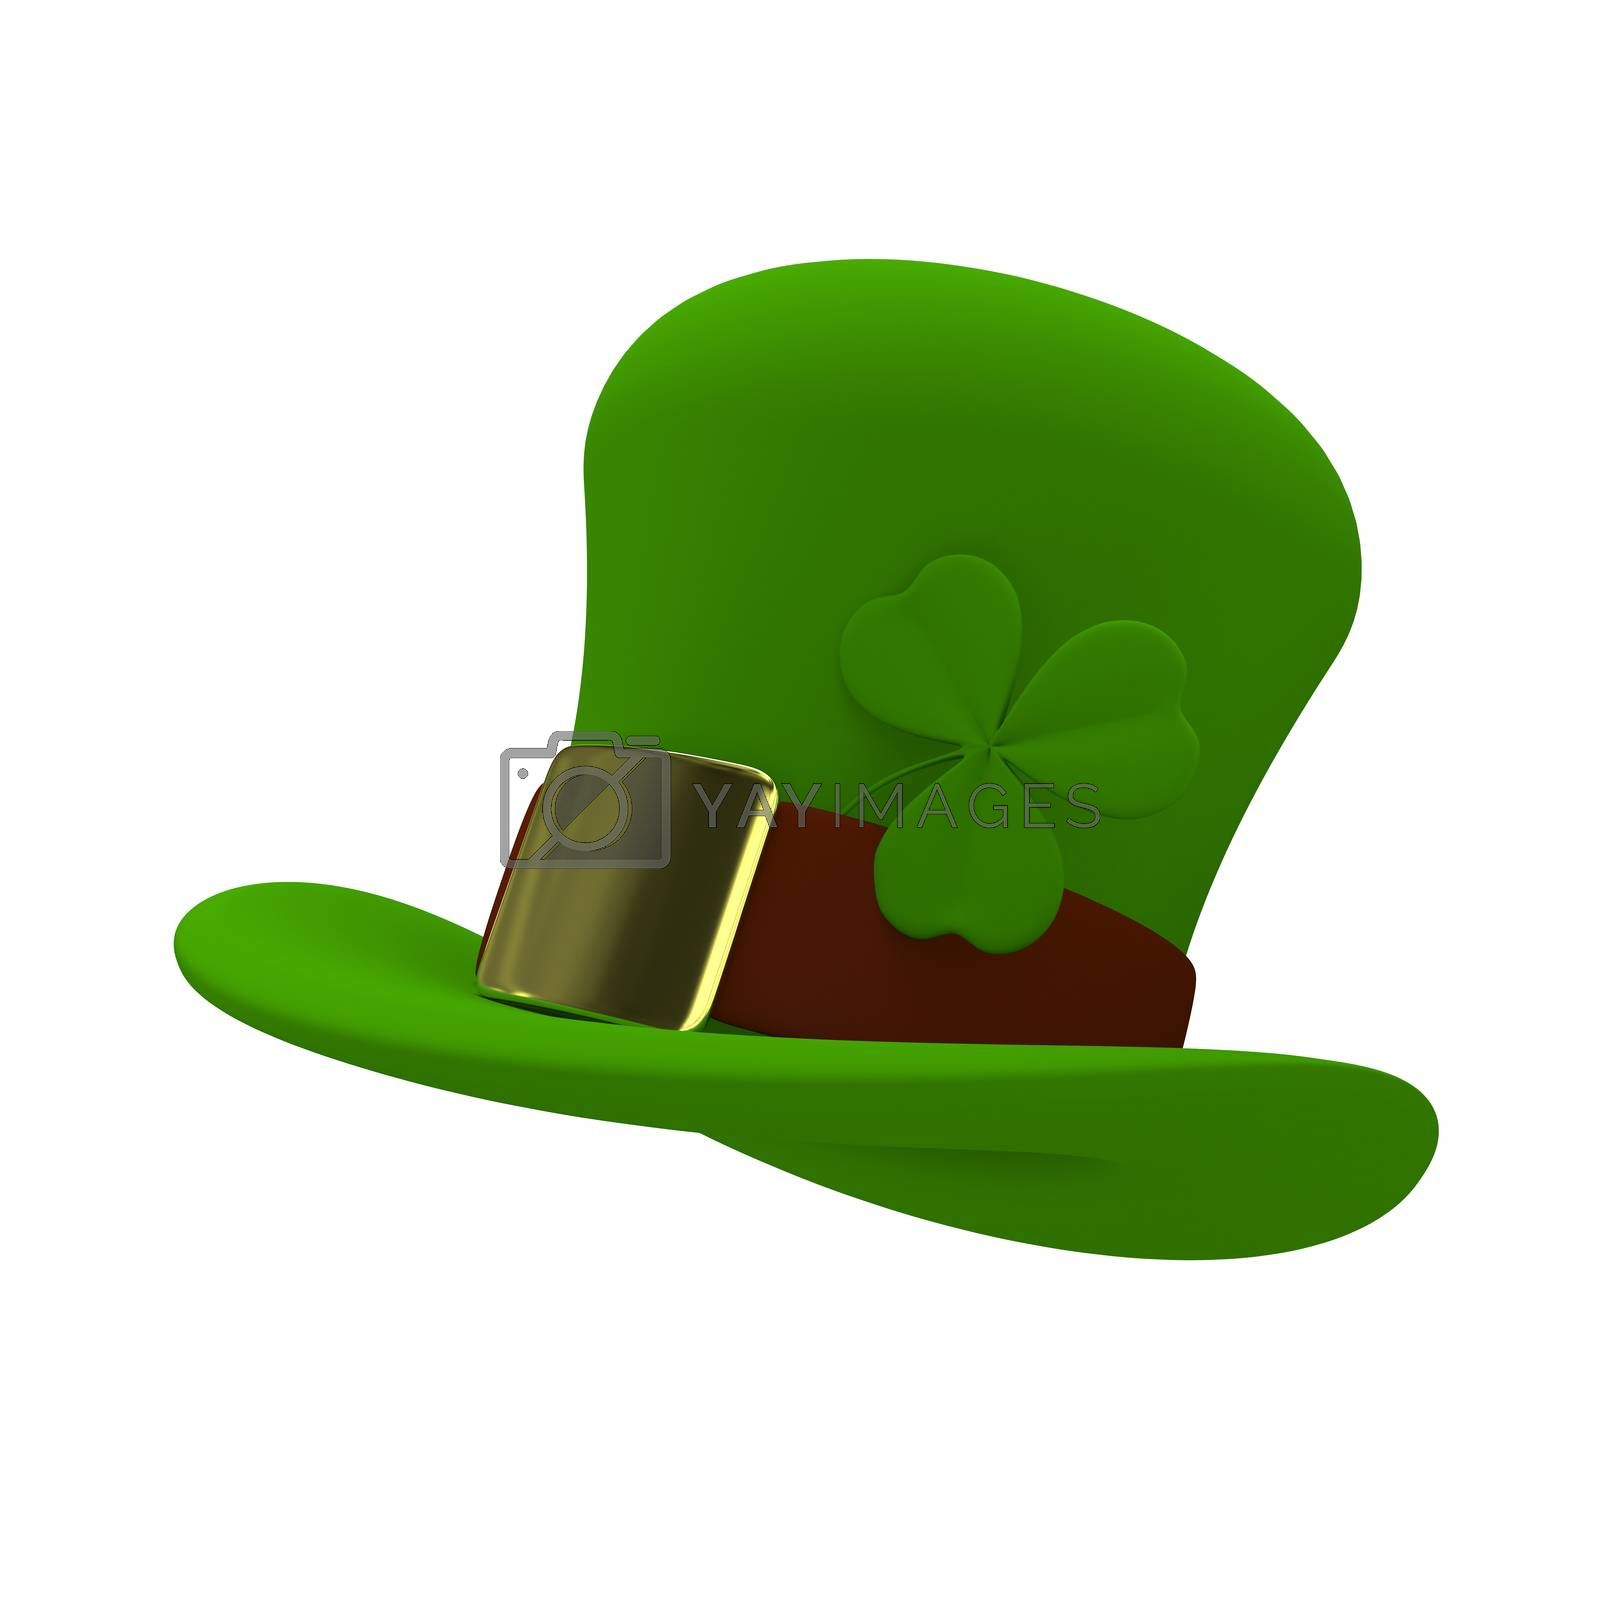 3D Illustration a Green St. Patrick's Day Hat on a White Background